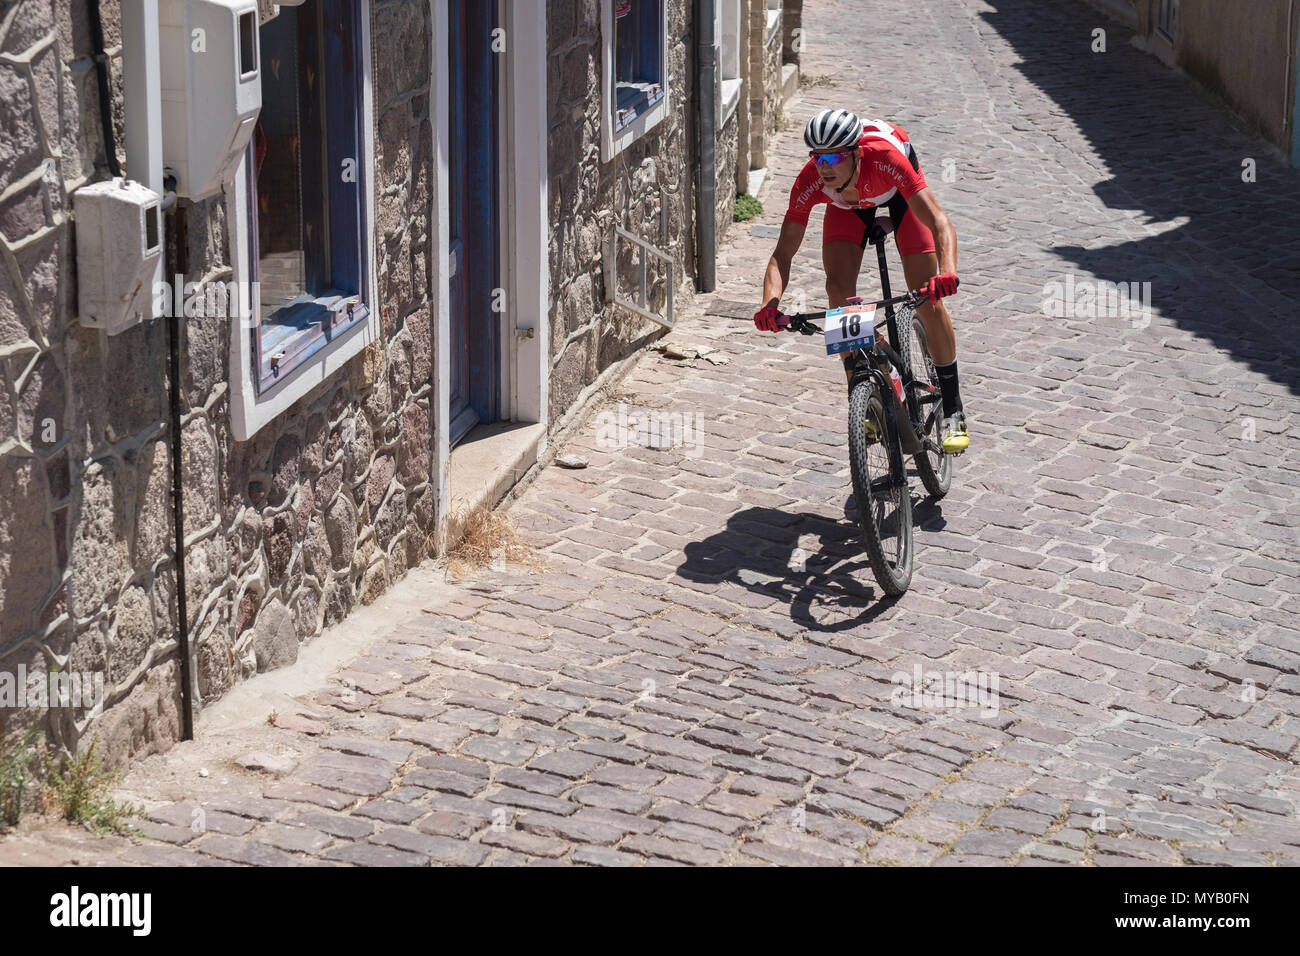 Turkish male cyclist competes in an international mountain bike race in the Greek village of Molyvos on the island of Lesvos - Stock Image